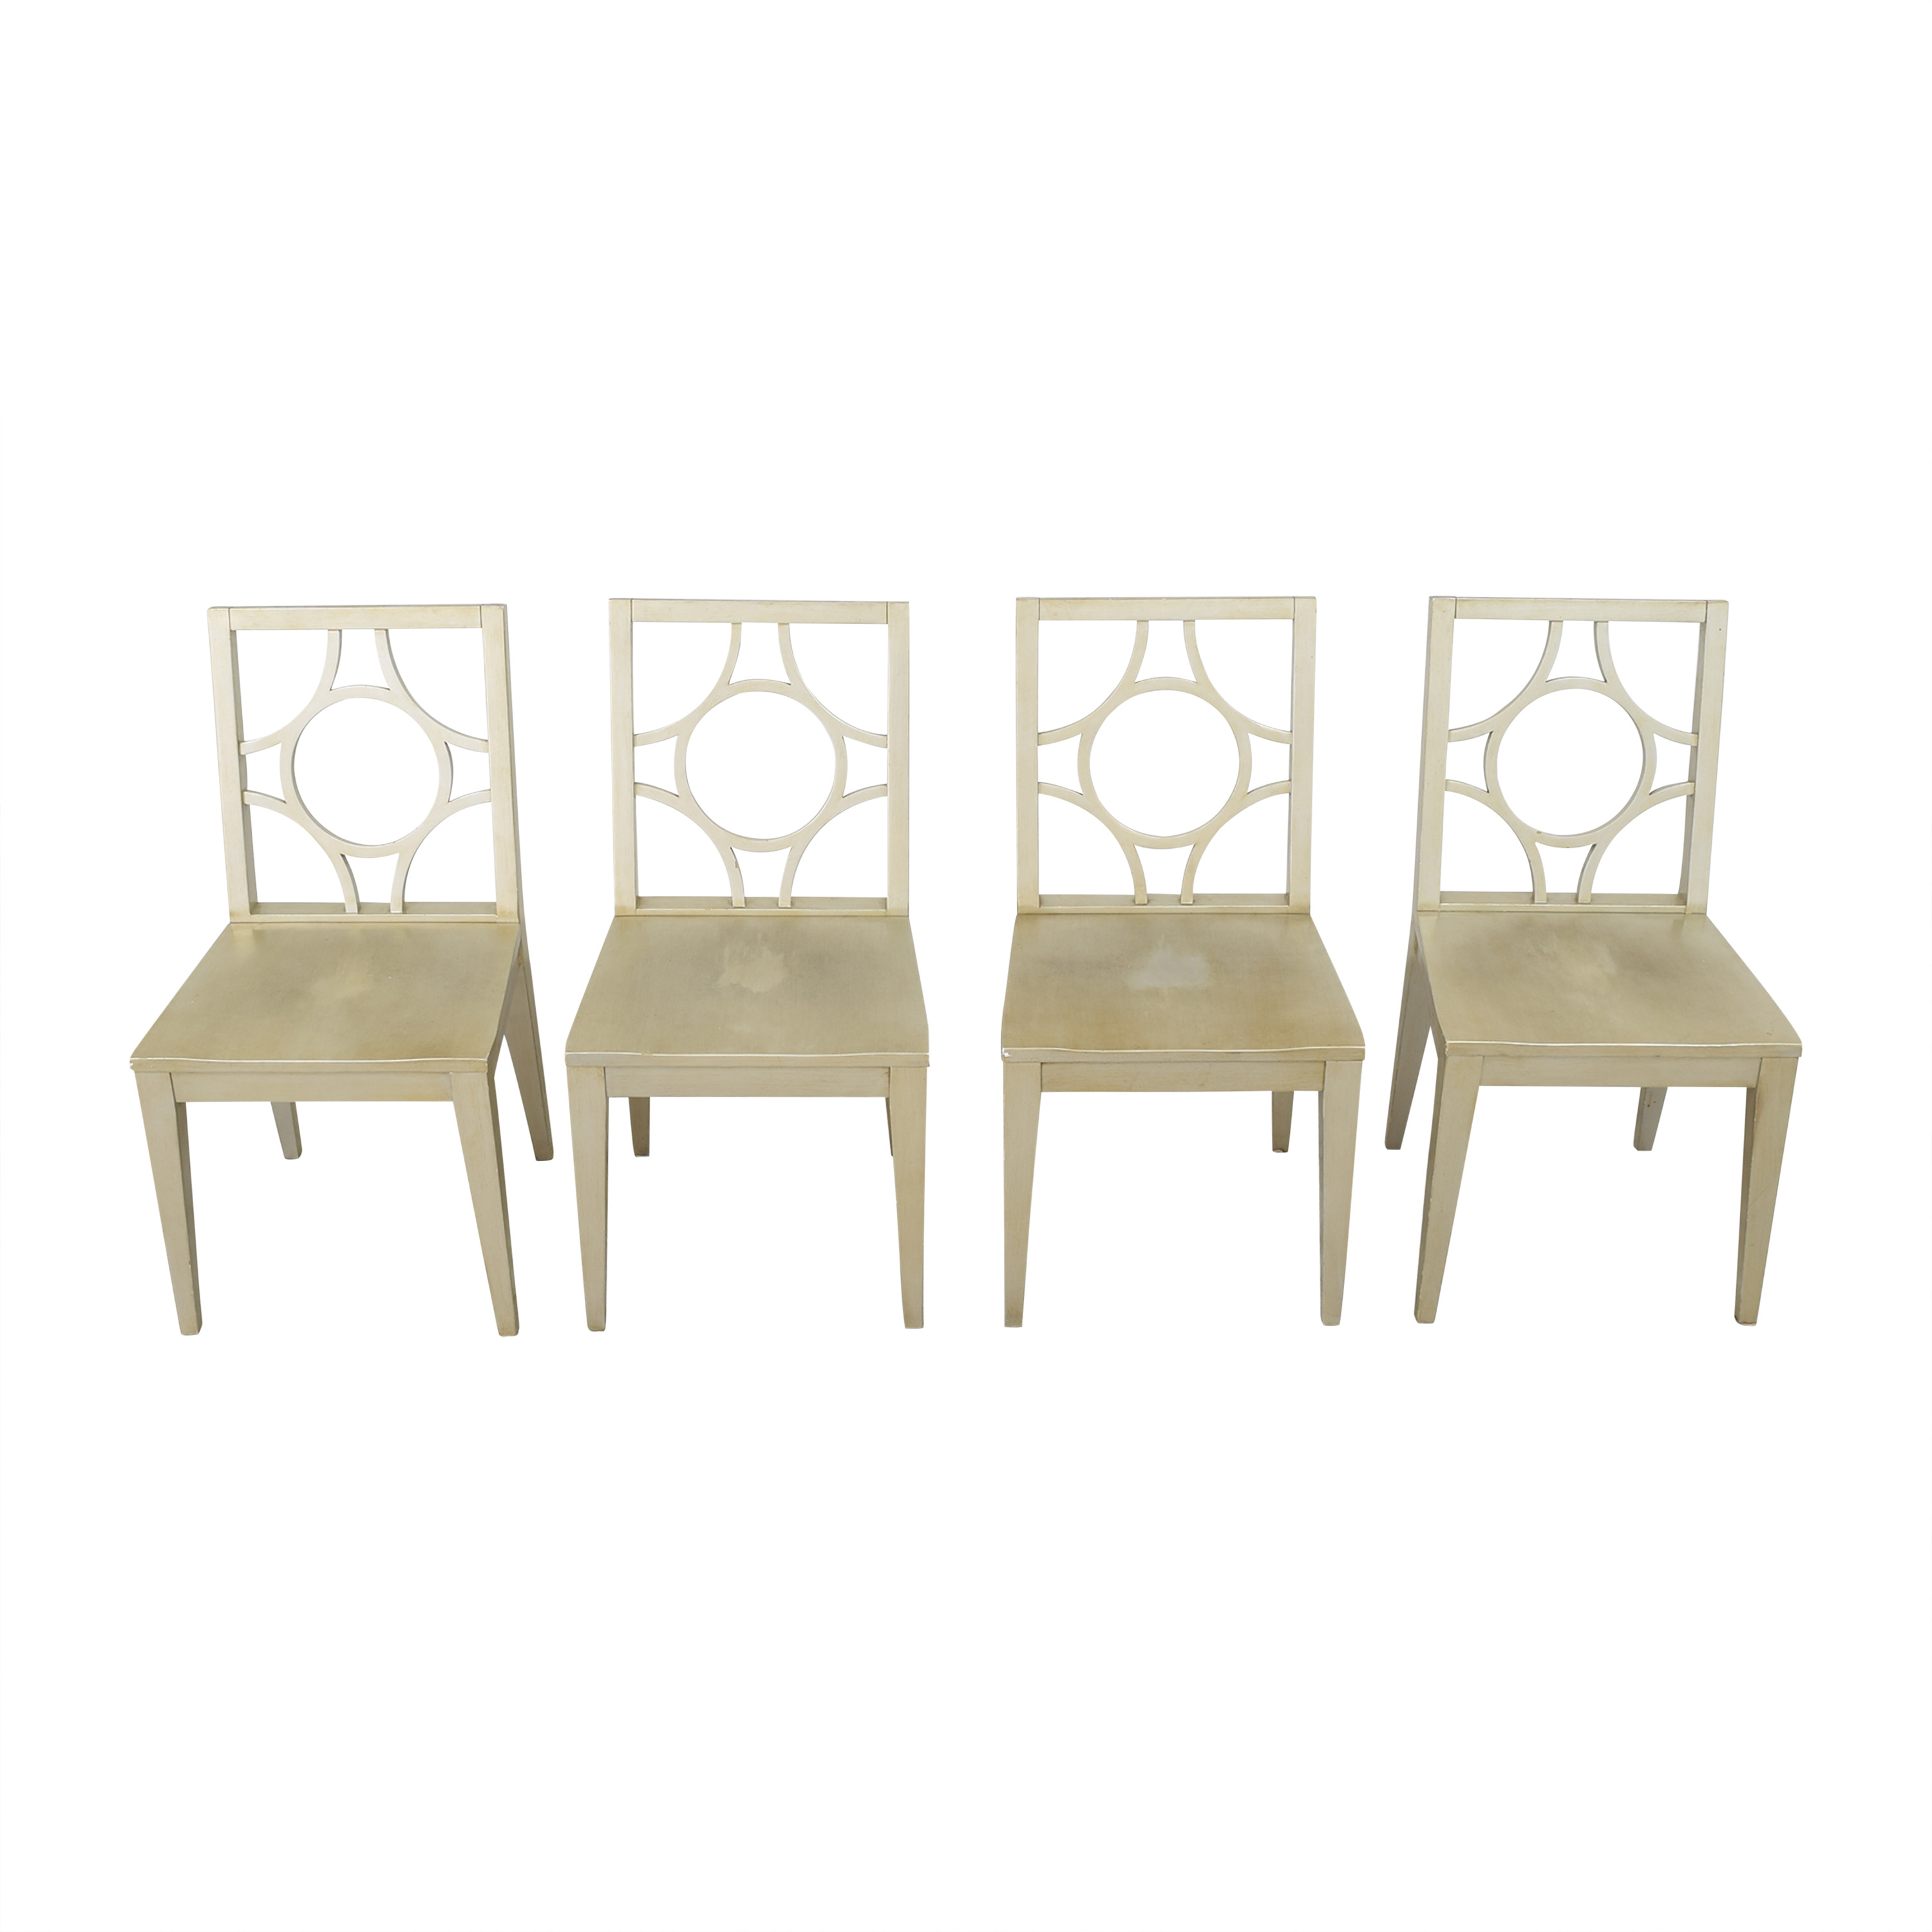 Crate & Barrel Crate & Barrel Dining Side Chairs dimensions